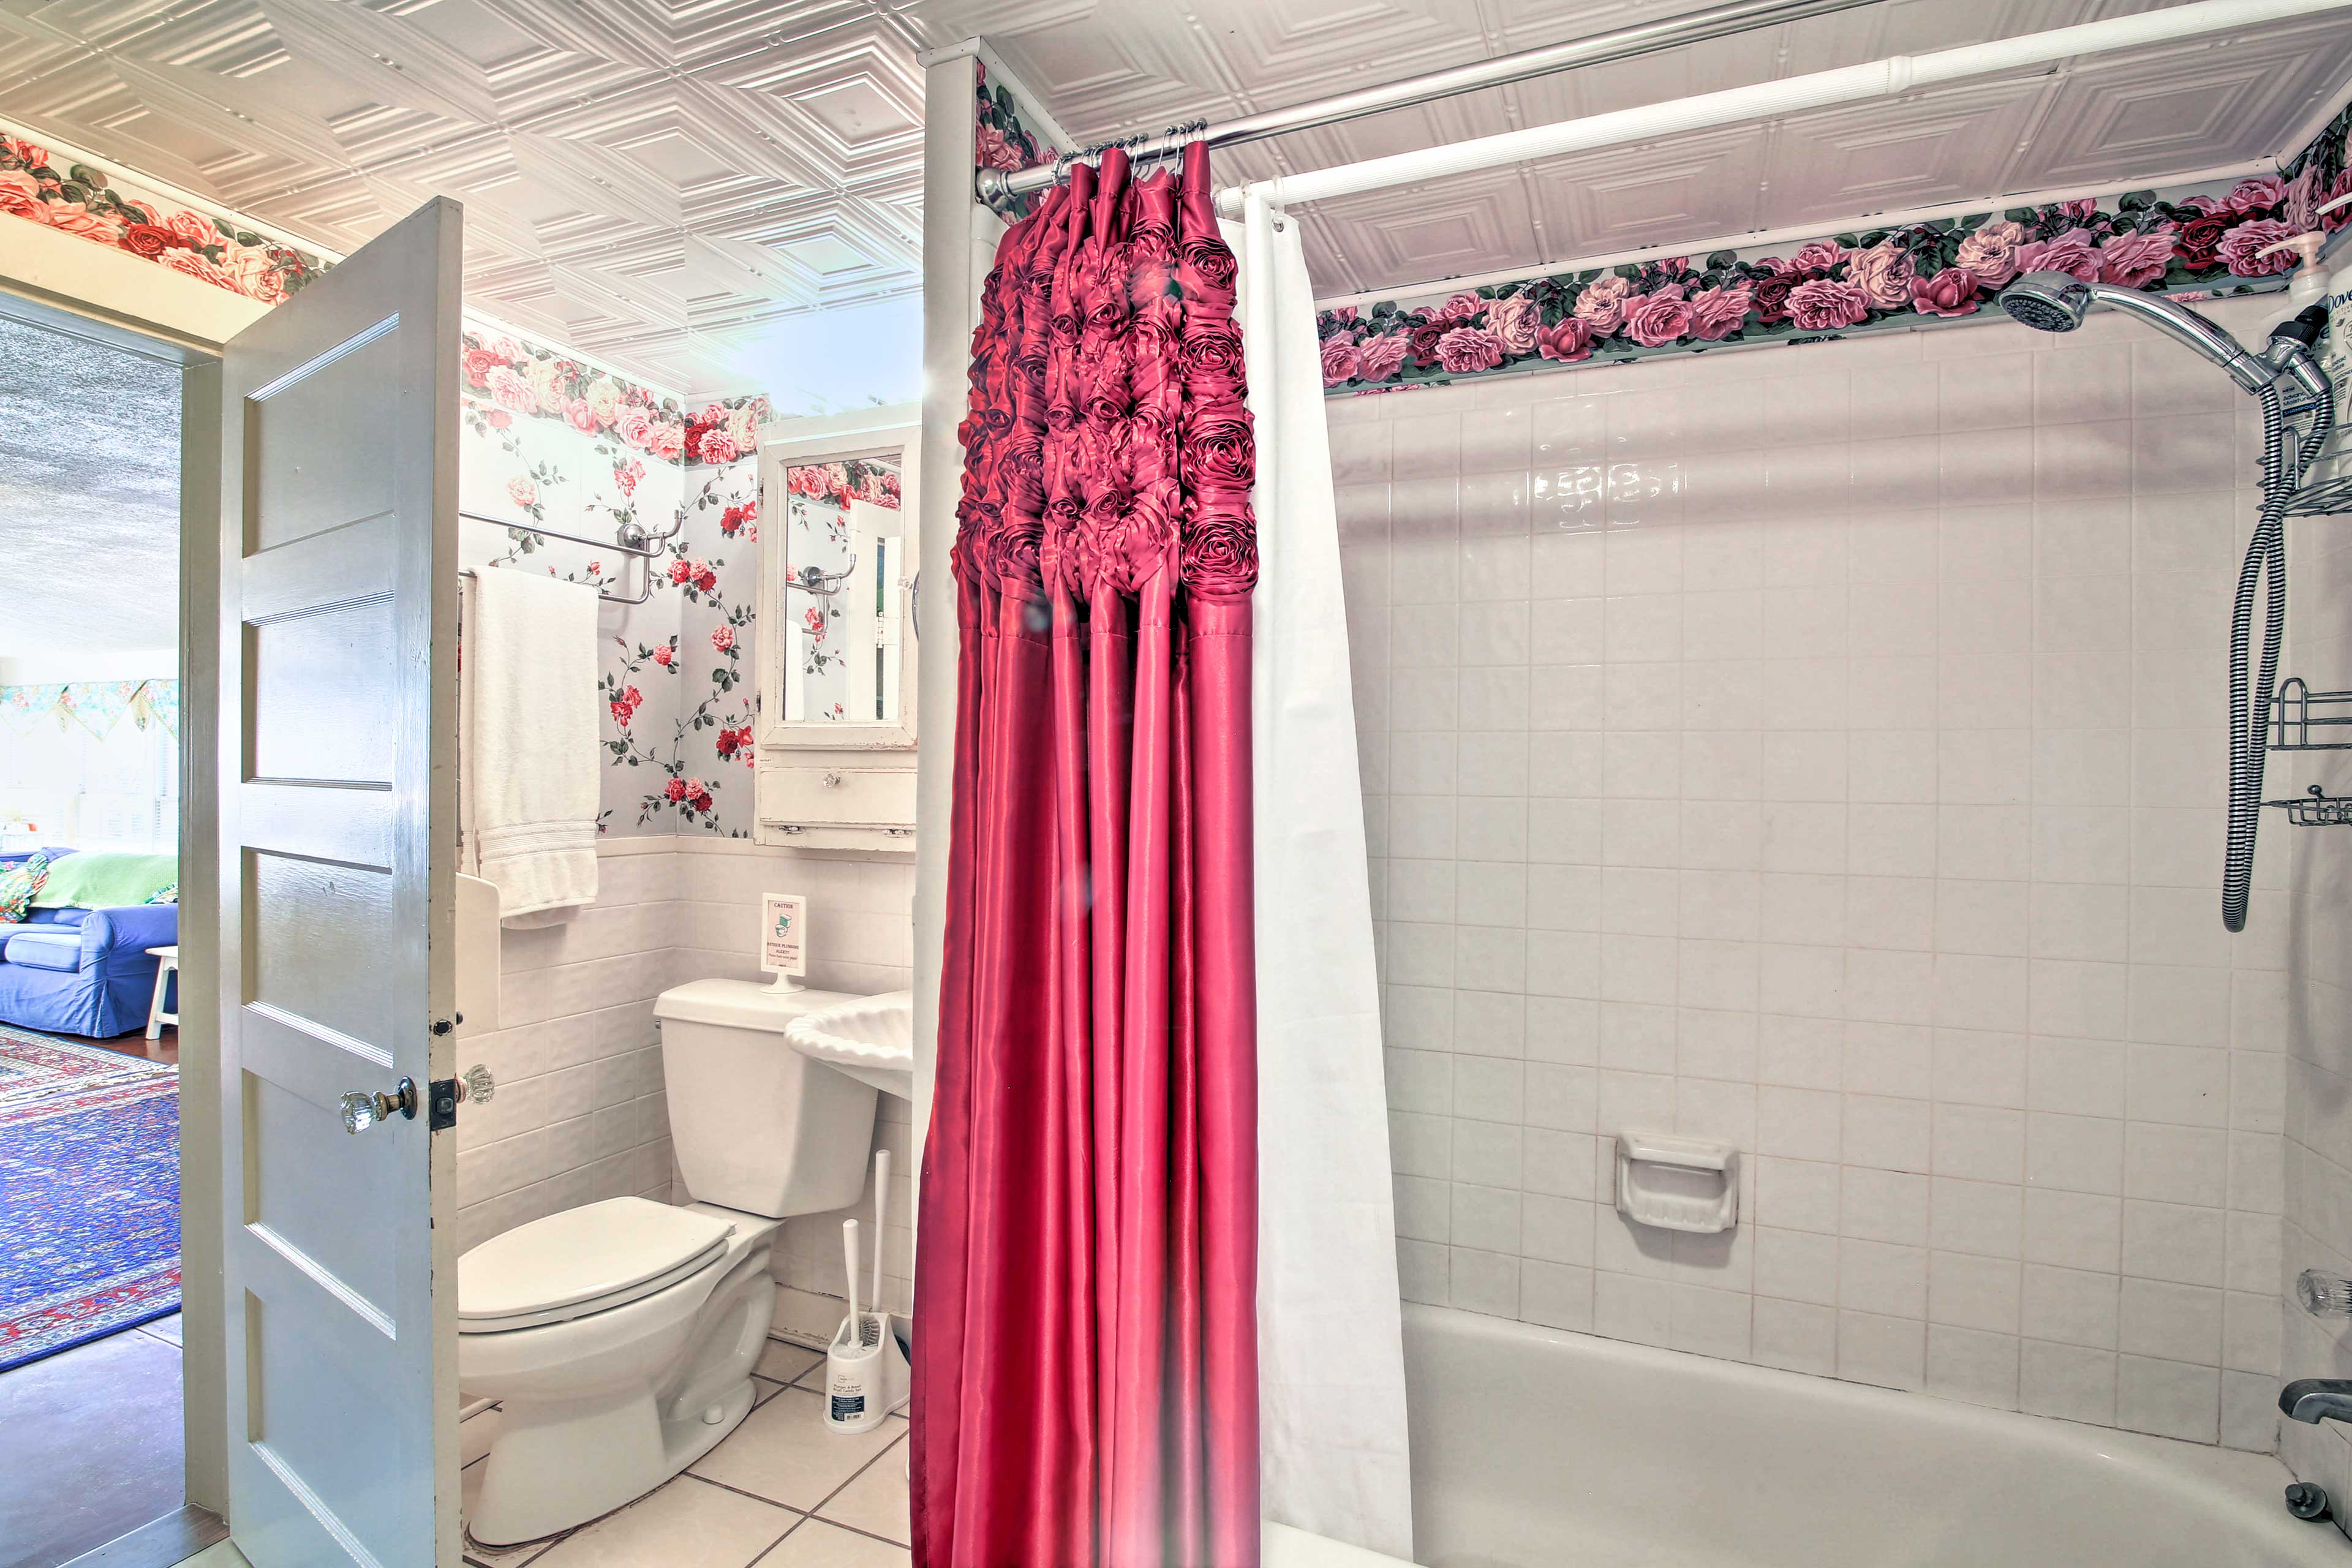 The bathroom includes a shower/tub combo.